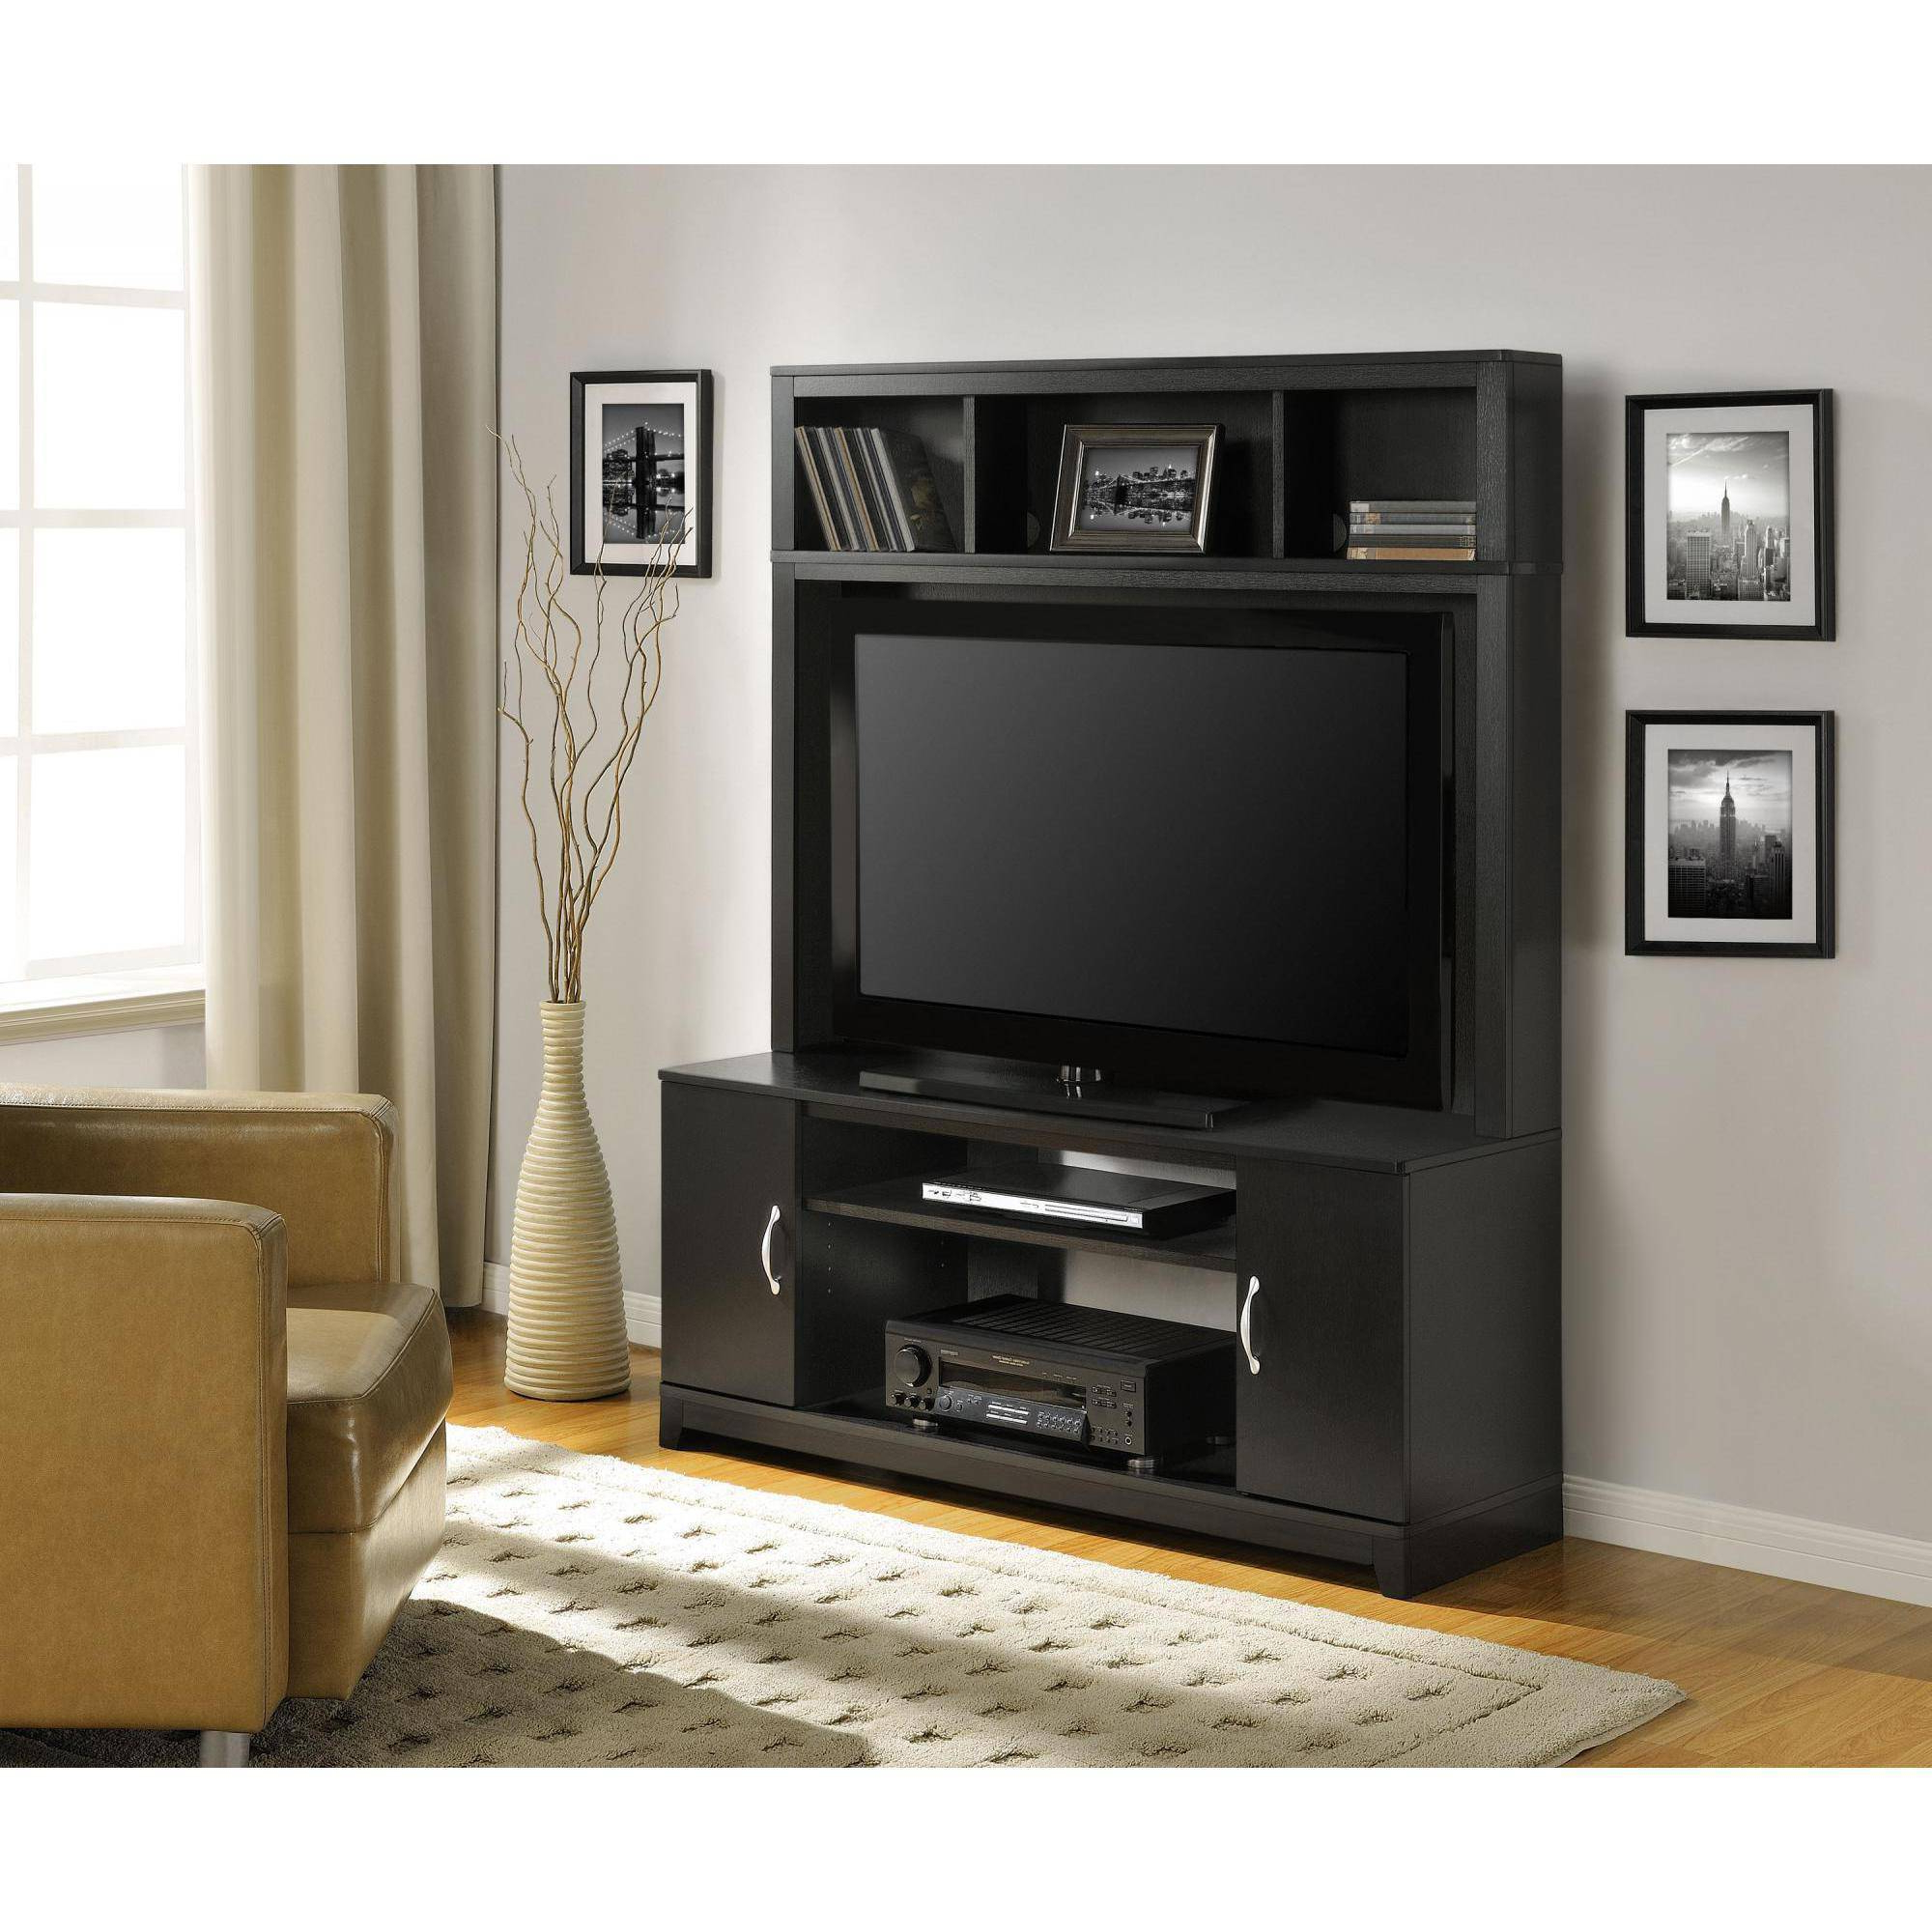 Popular Home Entertainment Center Wood Storage Cabinet Tv Stand Console Within Entertainment Center Tv Stands (Gallery 1 of 20)